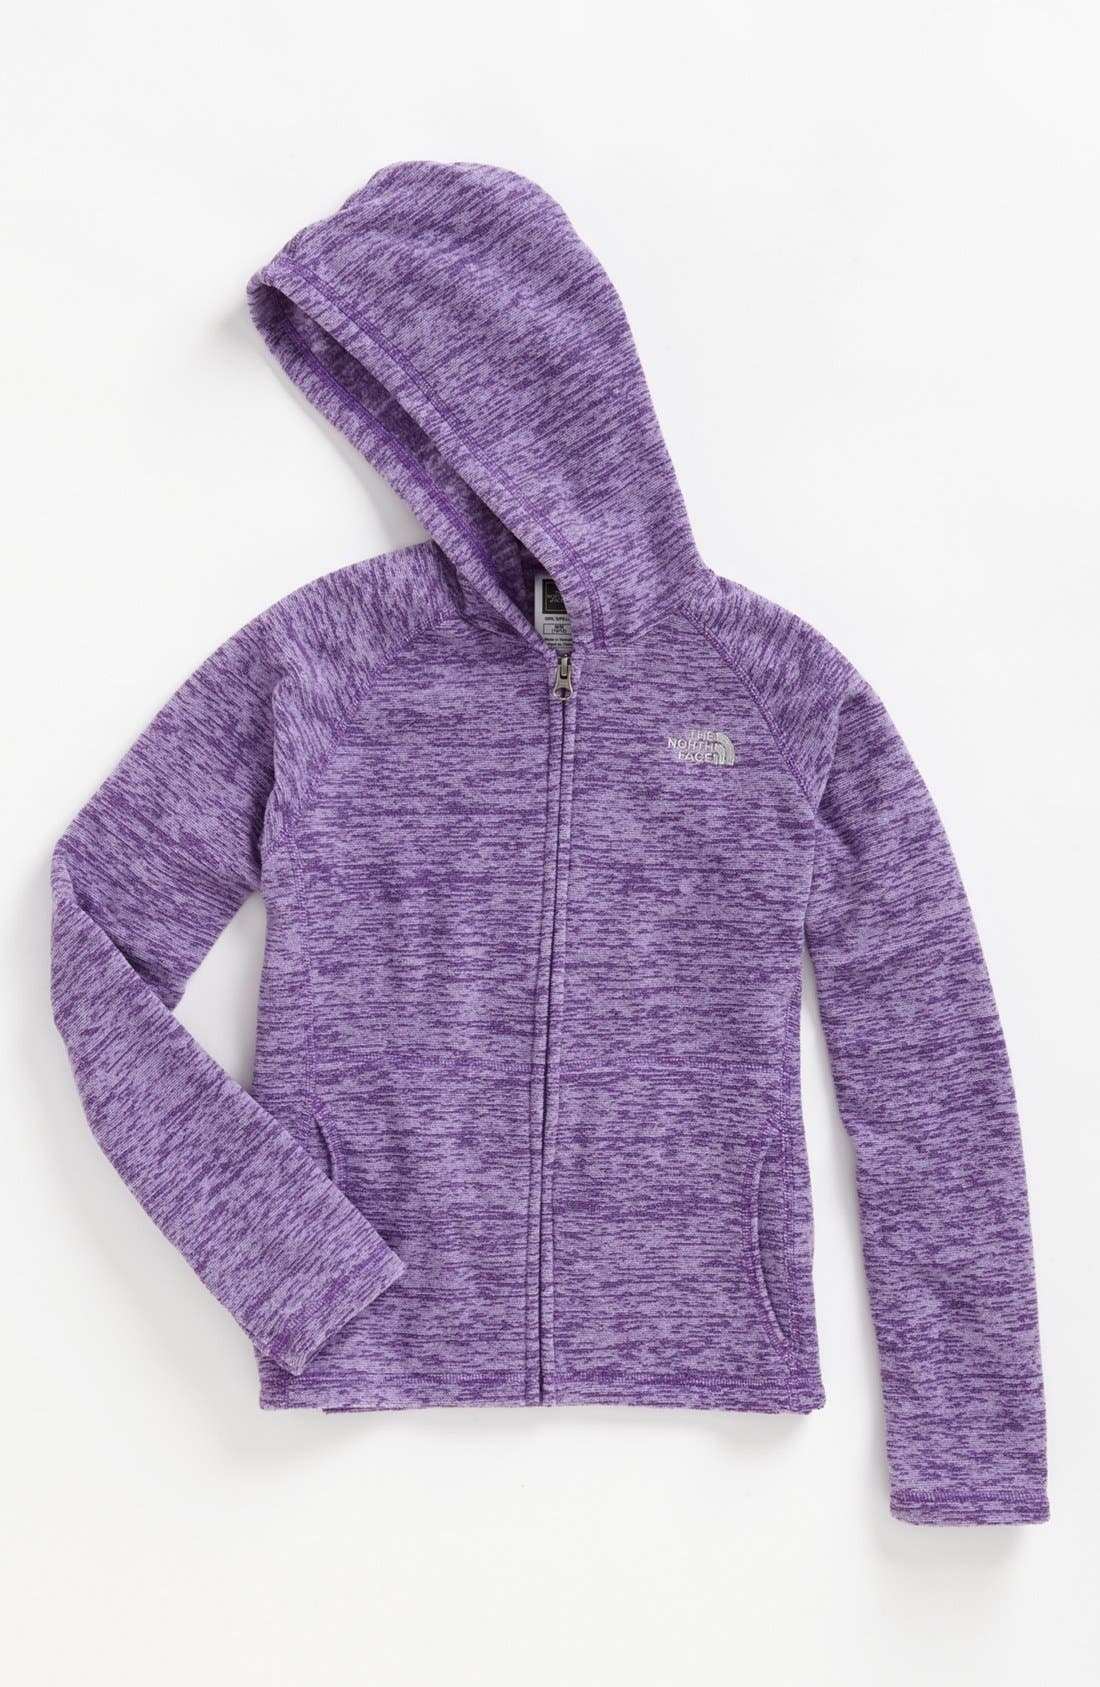 Main Image - The North Face 'Glacier' Fleece Hoodie (Little Girls & Big Girls)